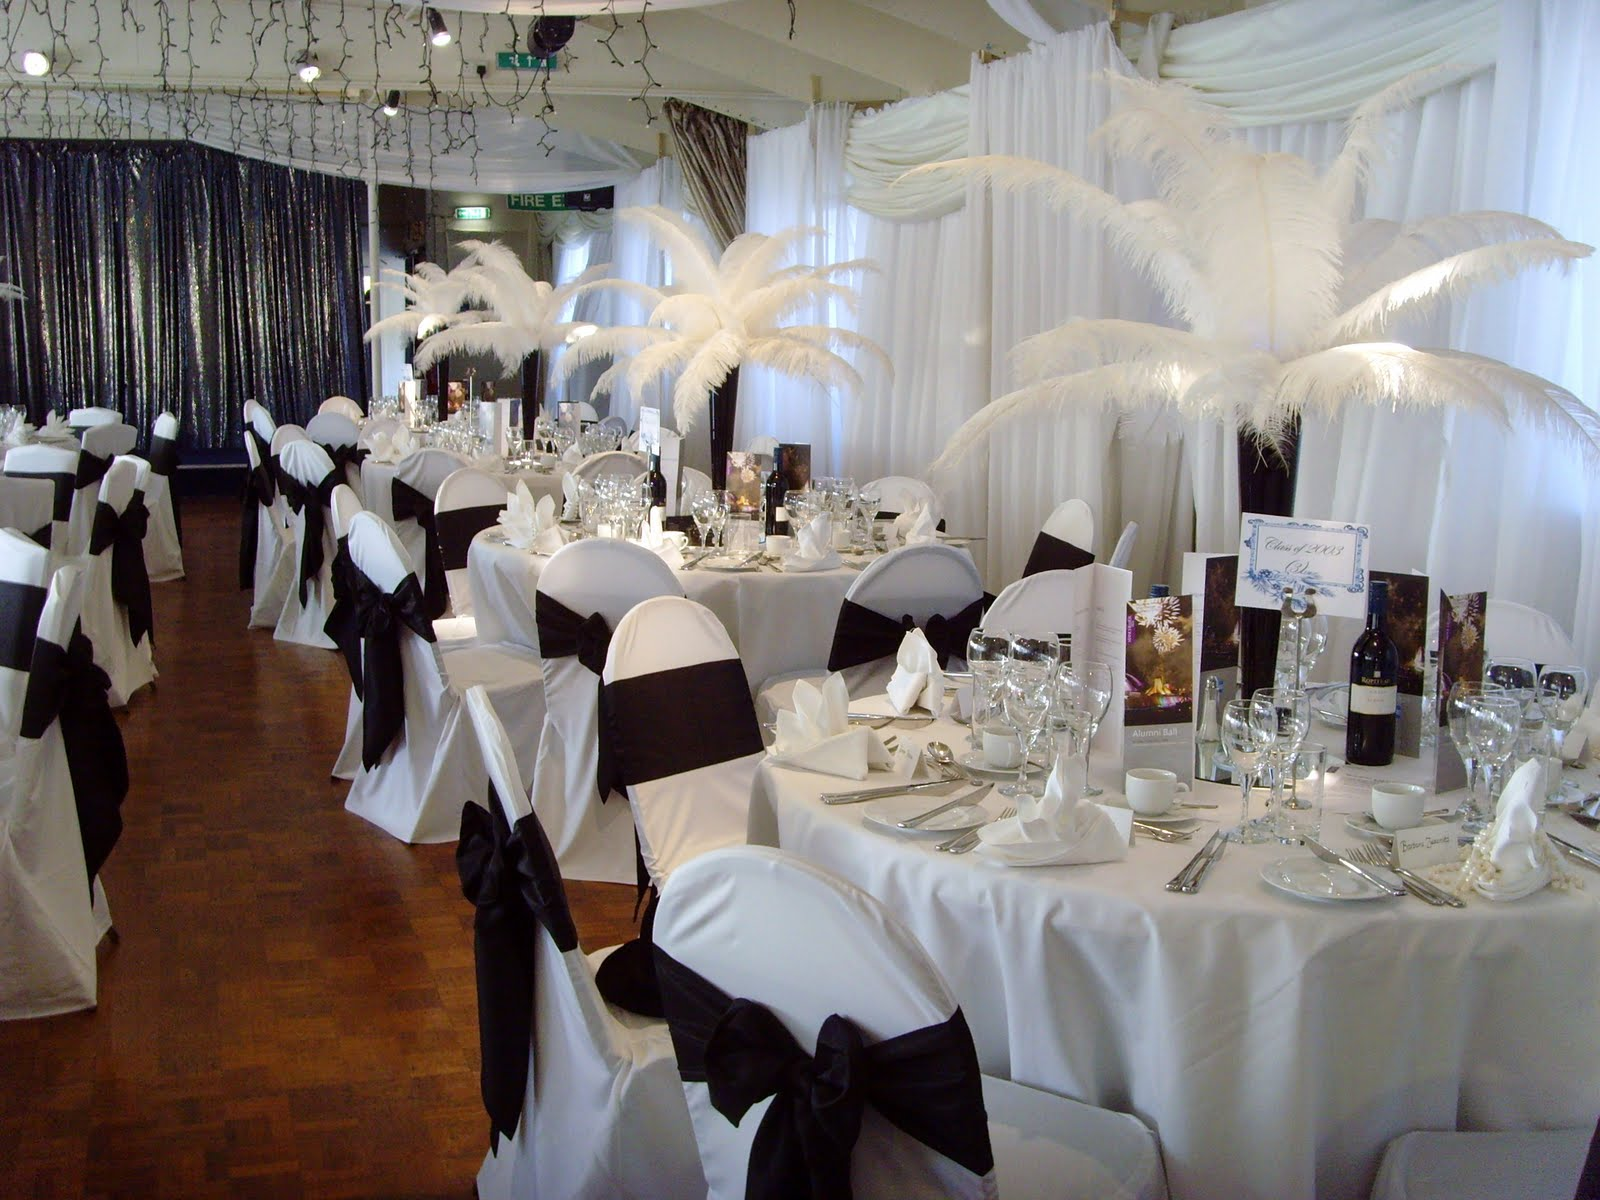 The best wedding decorations wedding venues decorations guide for Wedding banquet decorations